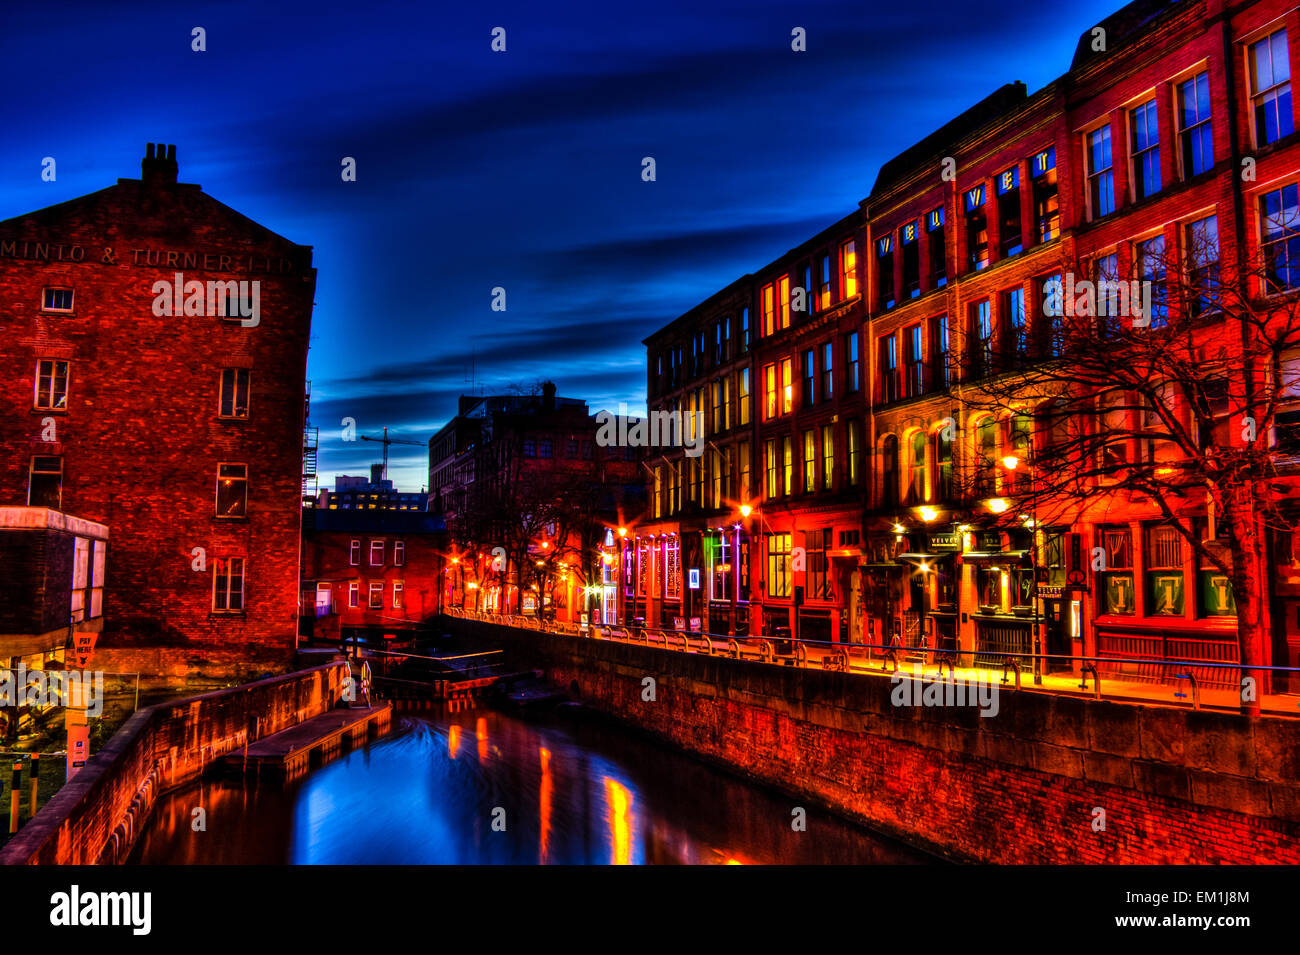 Manchester Gay Village during blue hour. HDR. - Stock Image